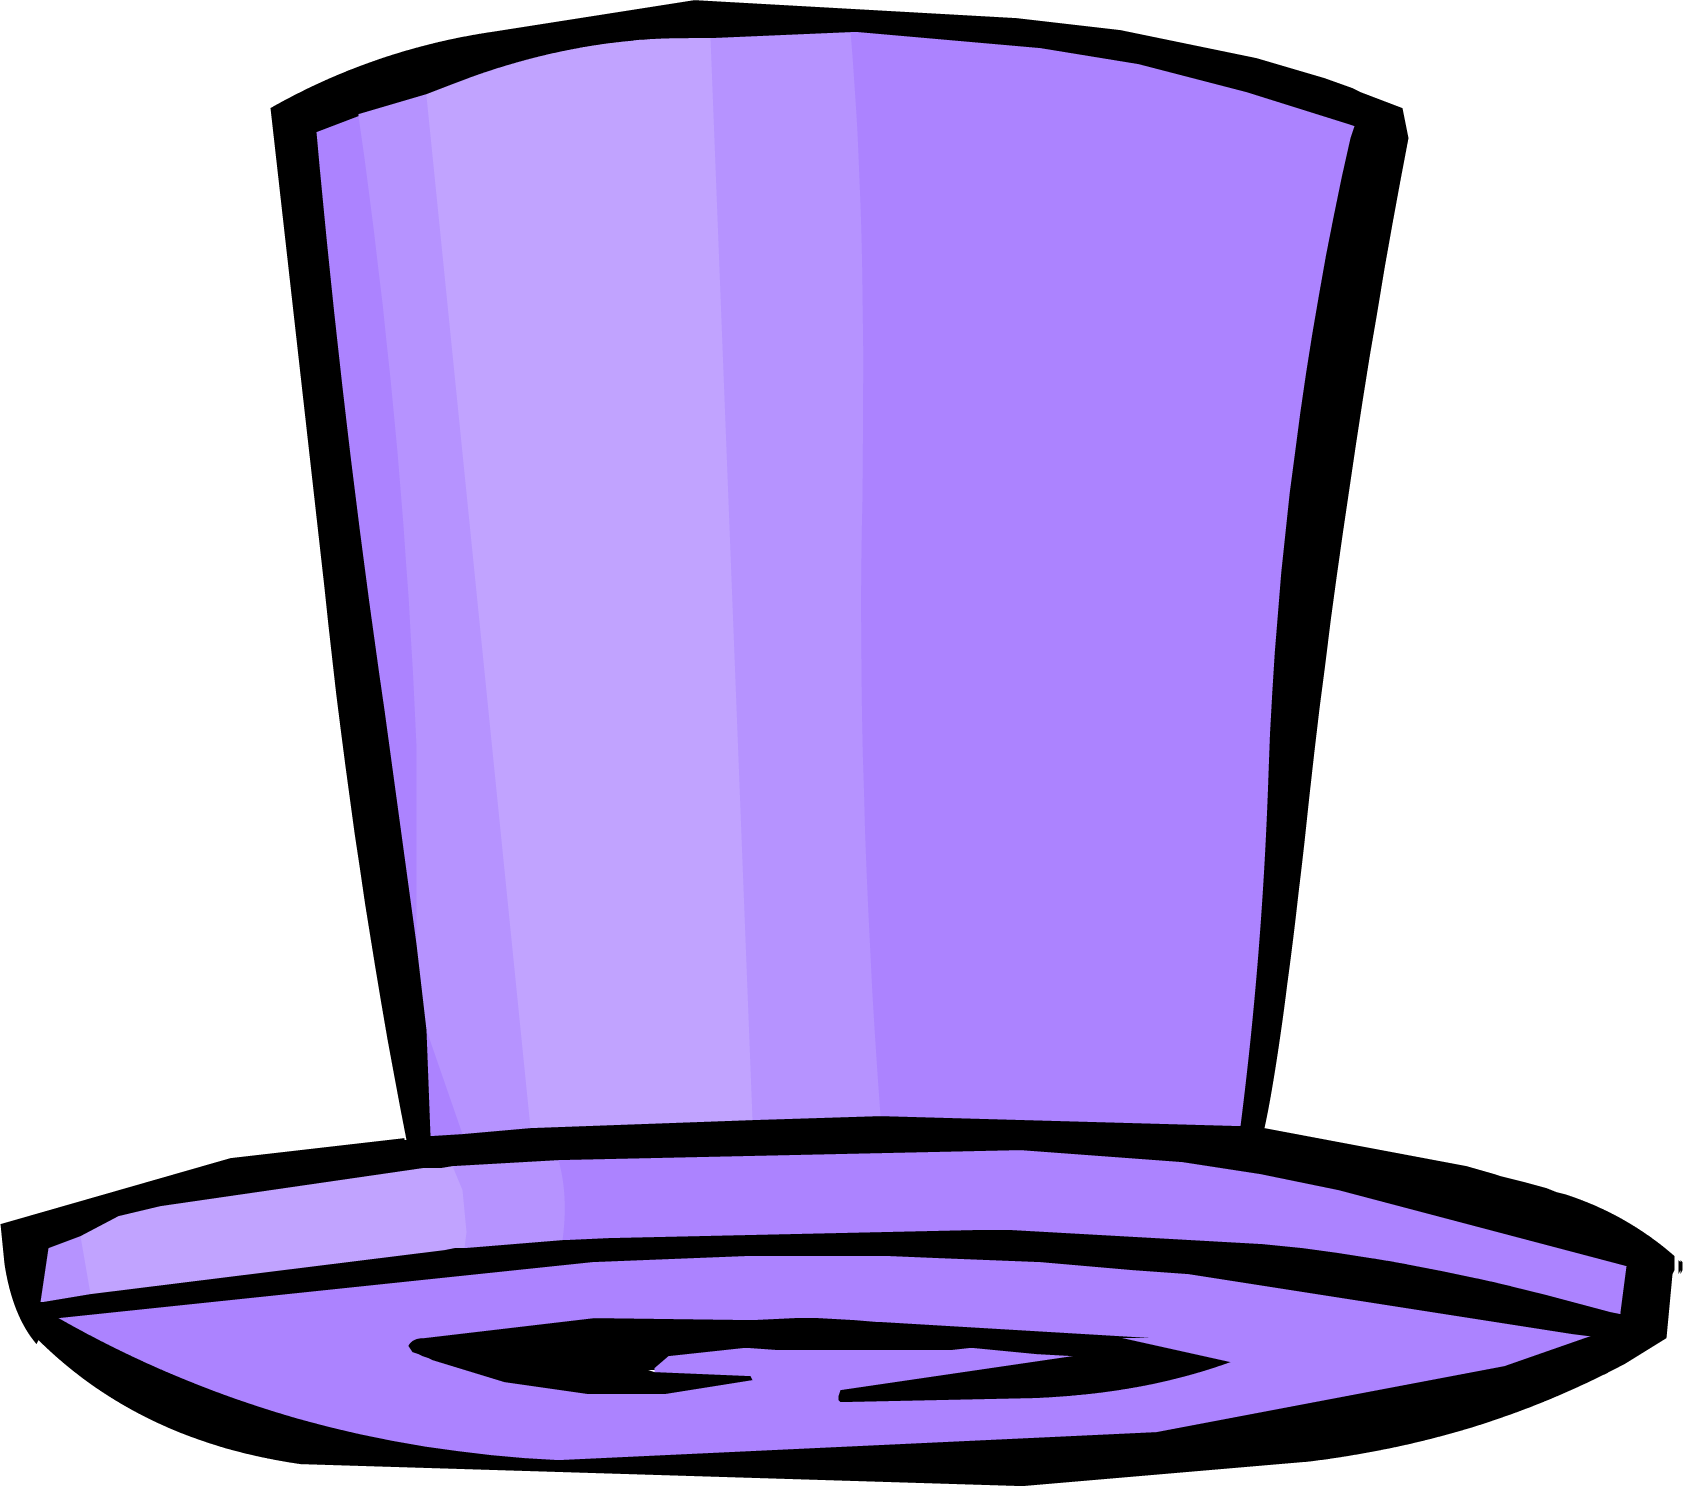 Purple Top Hat Club Penguin Rewritten Wiki Fandom Large collections of hd transparent top hat png images for free download. purple top hat club penguin rewritten